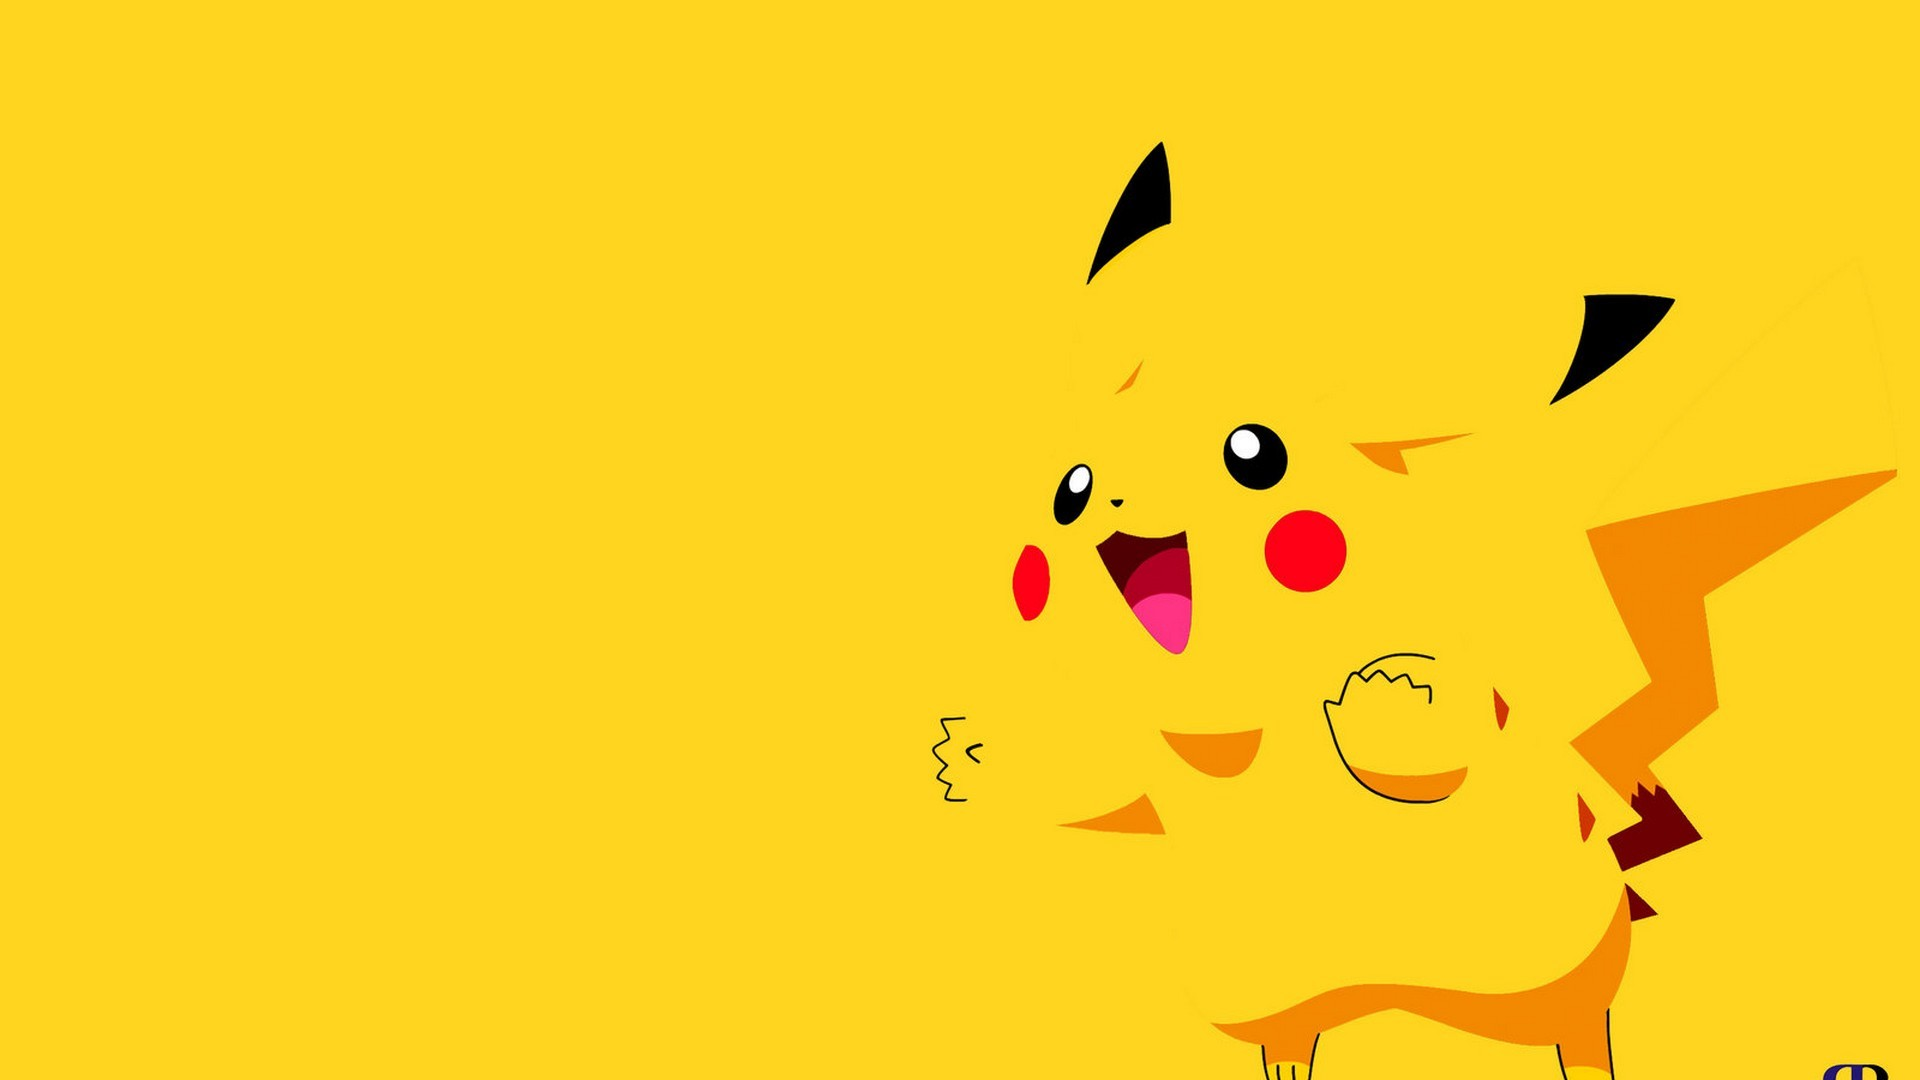 Res: 1920x1080, Yellow Cute Desktop Backgrounds HD with image resolution  pixel.  You can use this wallpaper